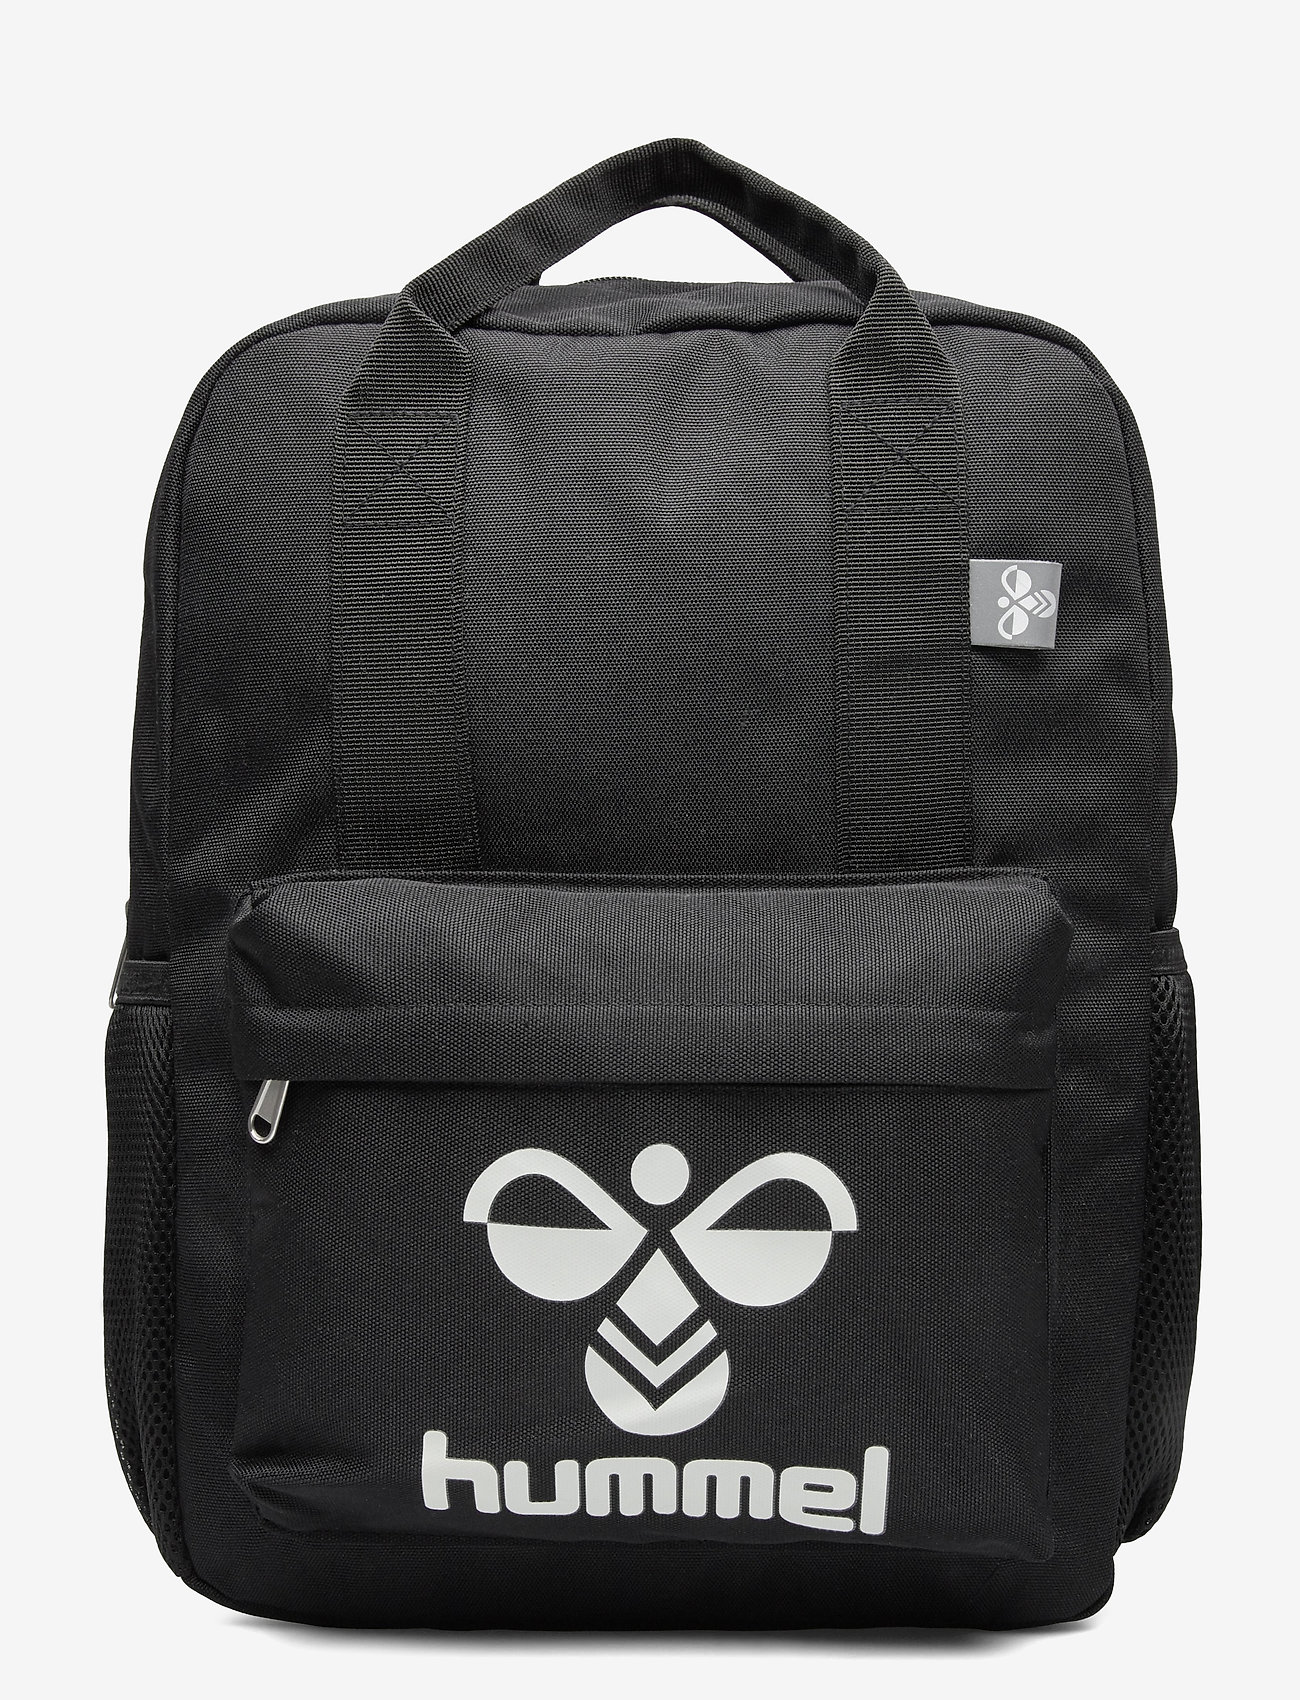 Hummel - hmlJAZZ BACK PACK - plecaki - black - 1